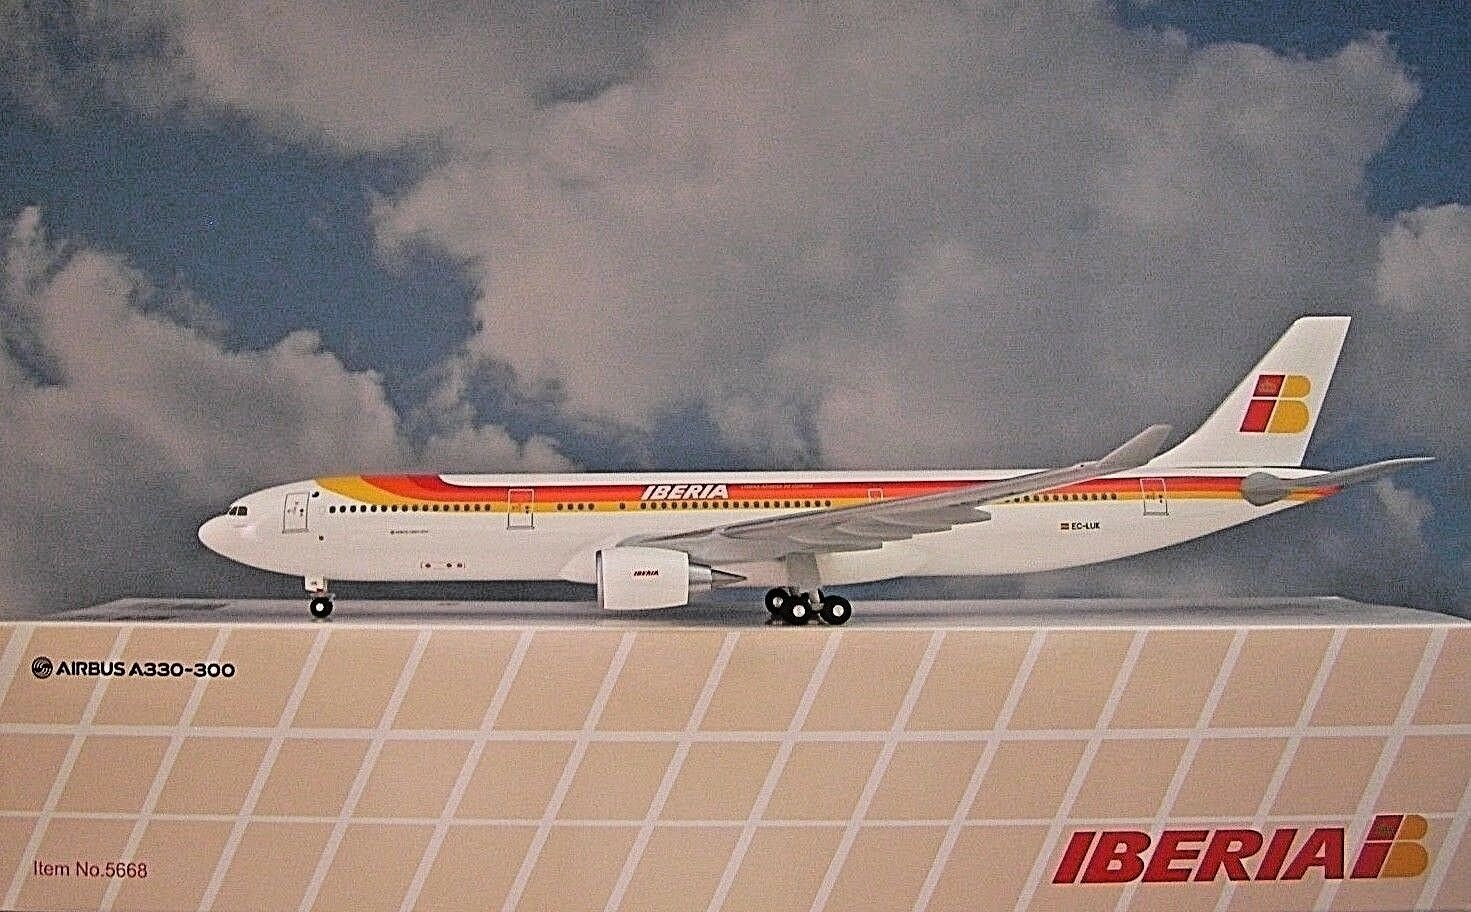 Hogan Wings 1 200 Iberia EC-LUK Airbus a330-300 li5668  Herpa Wings catalogue